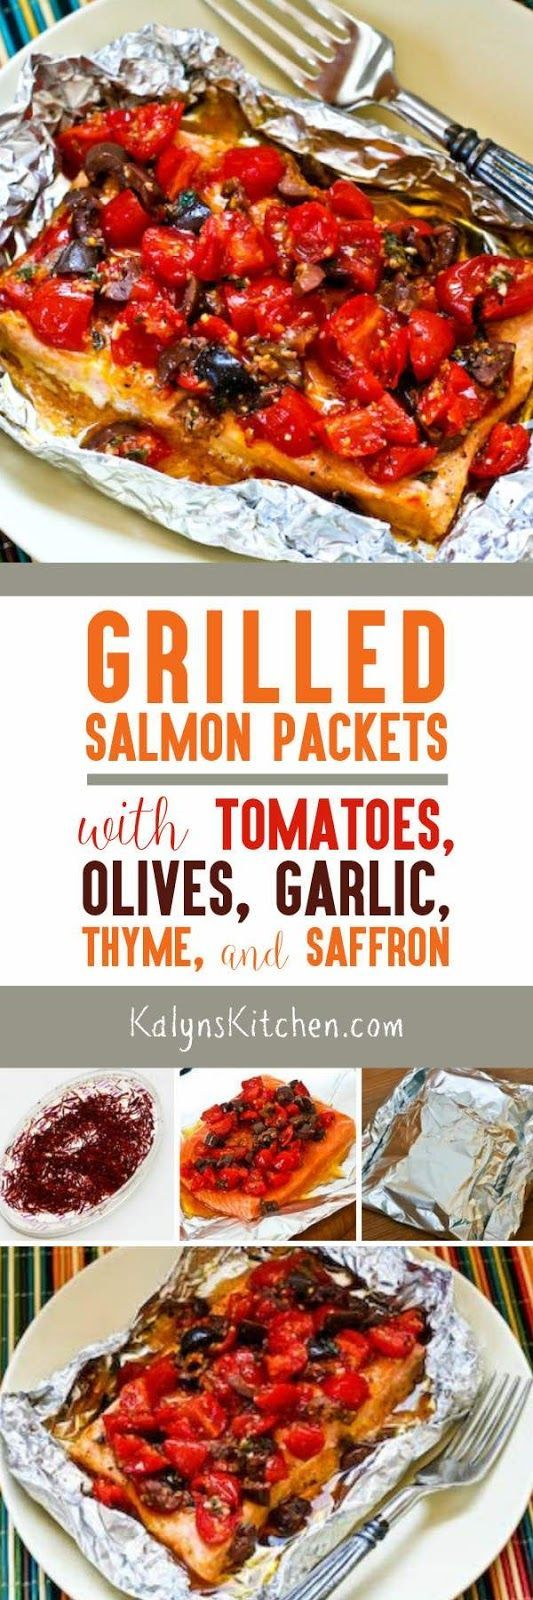 Delicious Grilled Salmon Packets with Tomatoes, Olives, Garlic, Thyme, and…